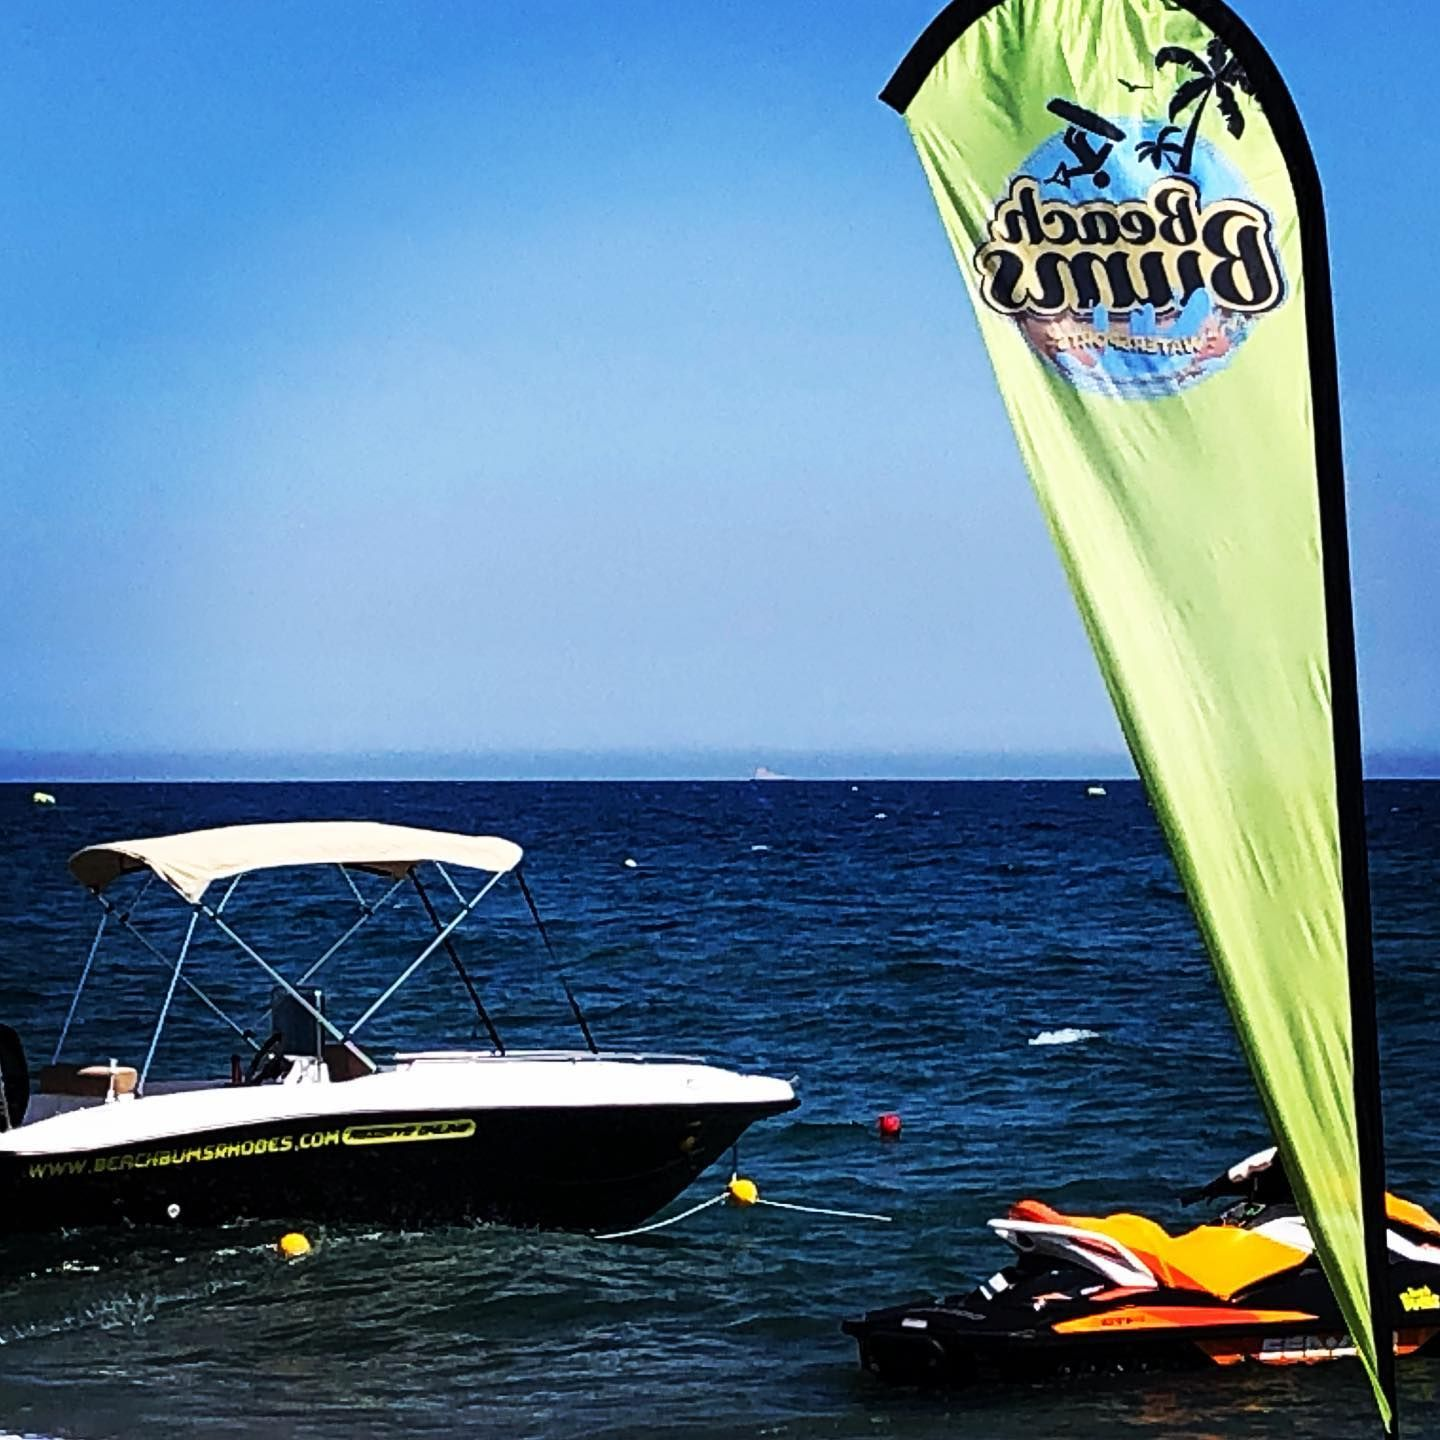 View of rental boat and jetski in the sea with green Beach Bums Rhodes flag on beach